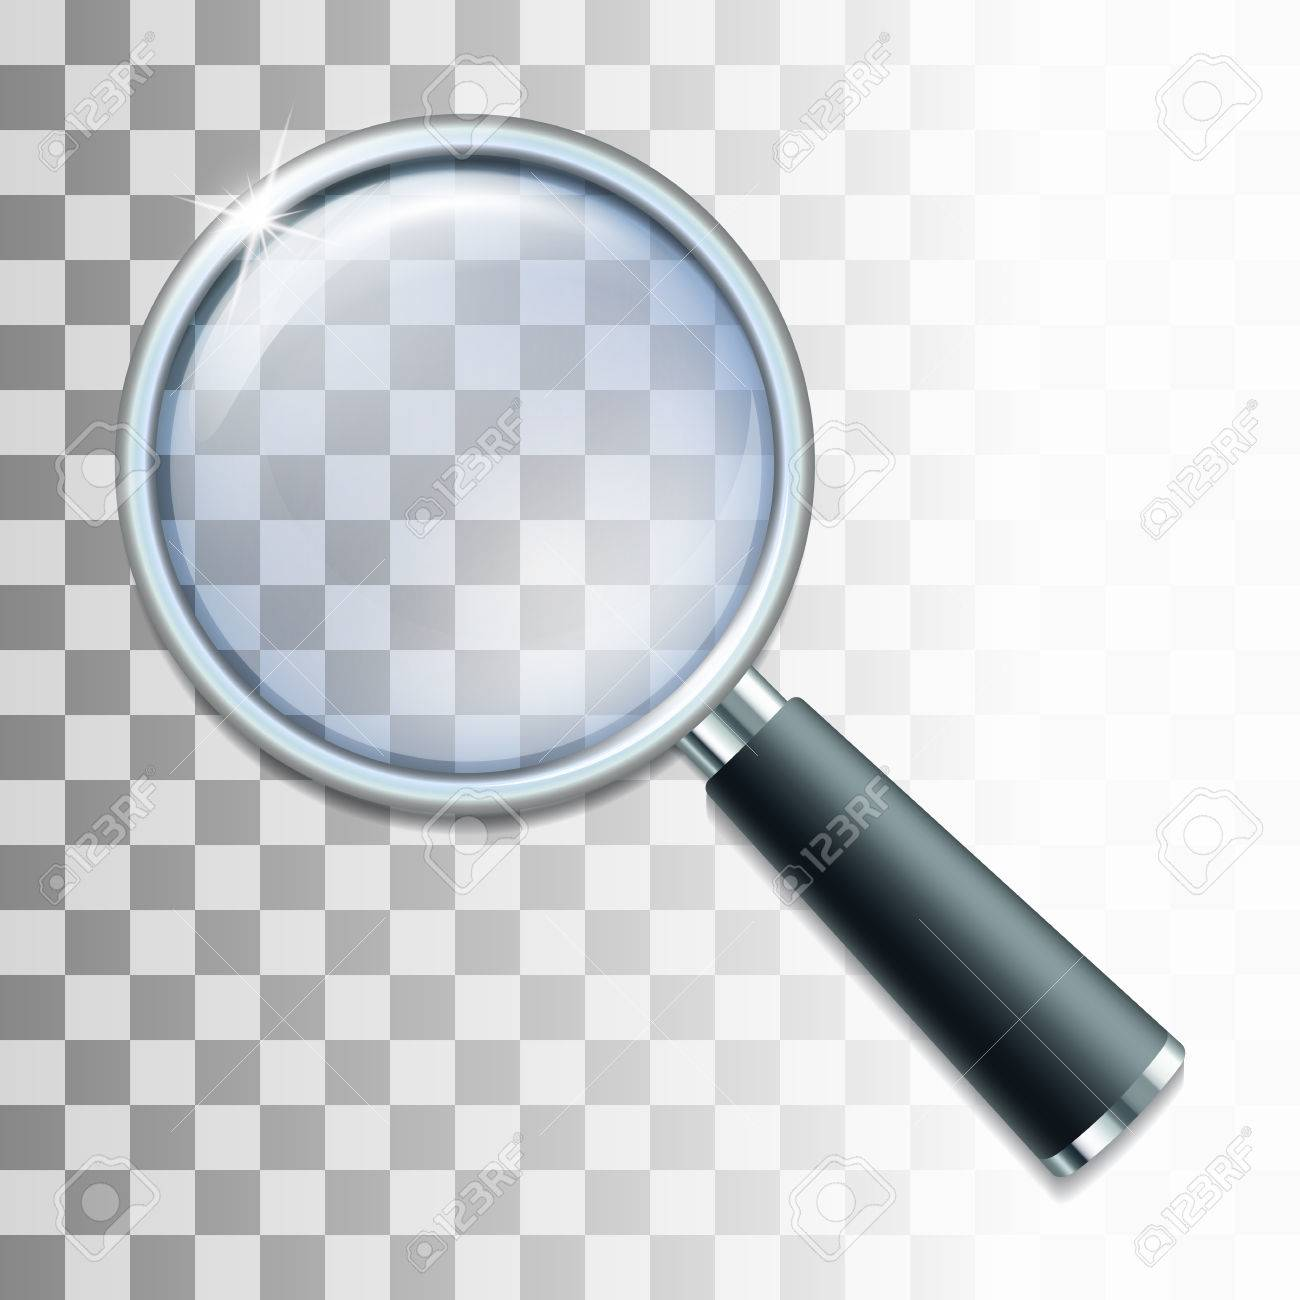 hight resolution of magnifying glass on transparent background vector illustration stock vector 61860942